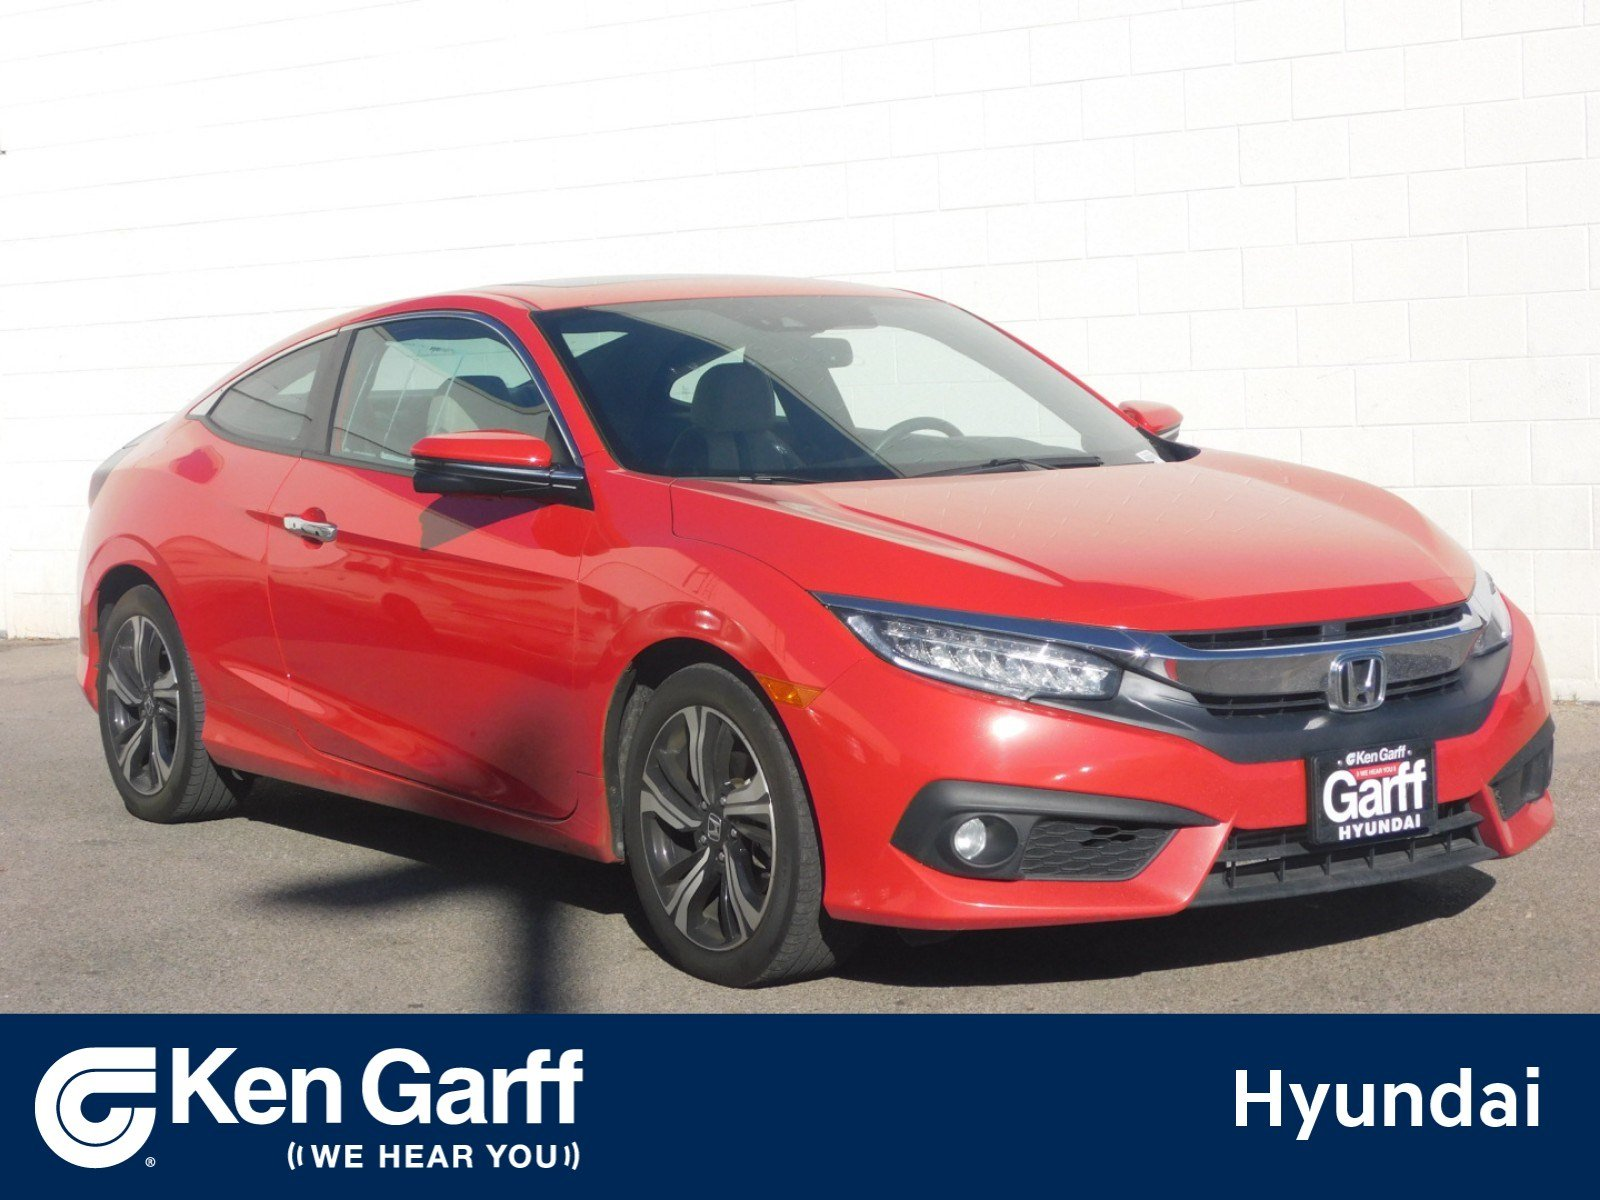 Pre Owned 2016 Honda Civic Coupe Touring 2dr Car 2YU2059